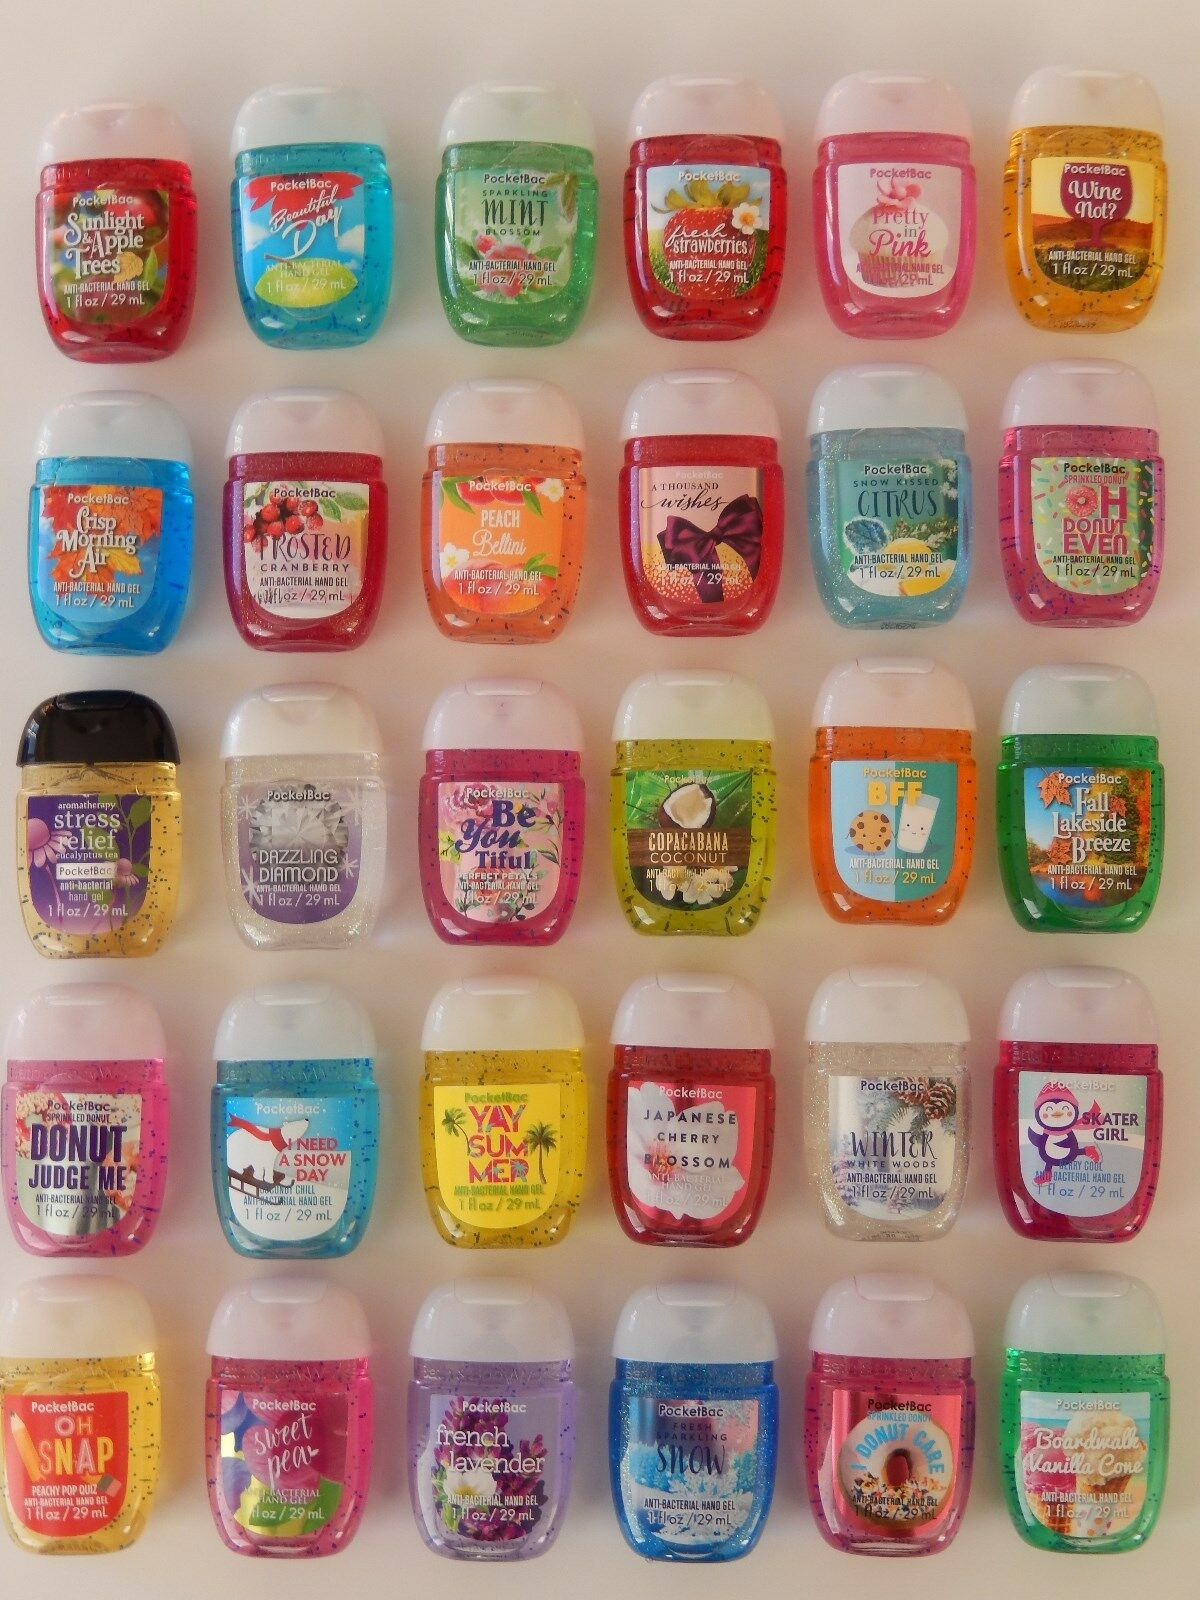 BATH AND BODY WORKS POCKETBAC HAND SANITIZER ANTI-BACTERIAL GEL 29ml NEW SCENTS